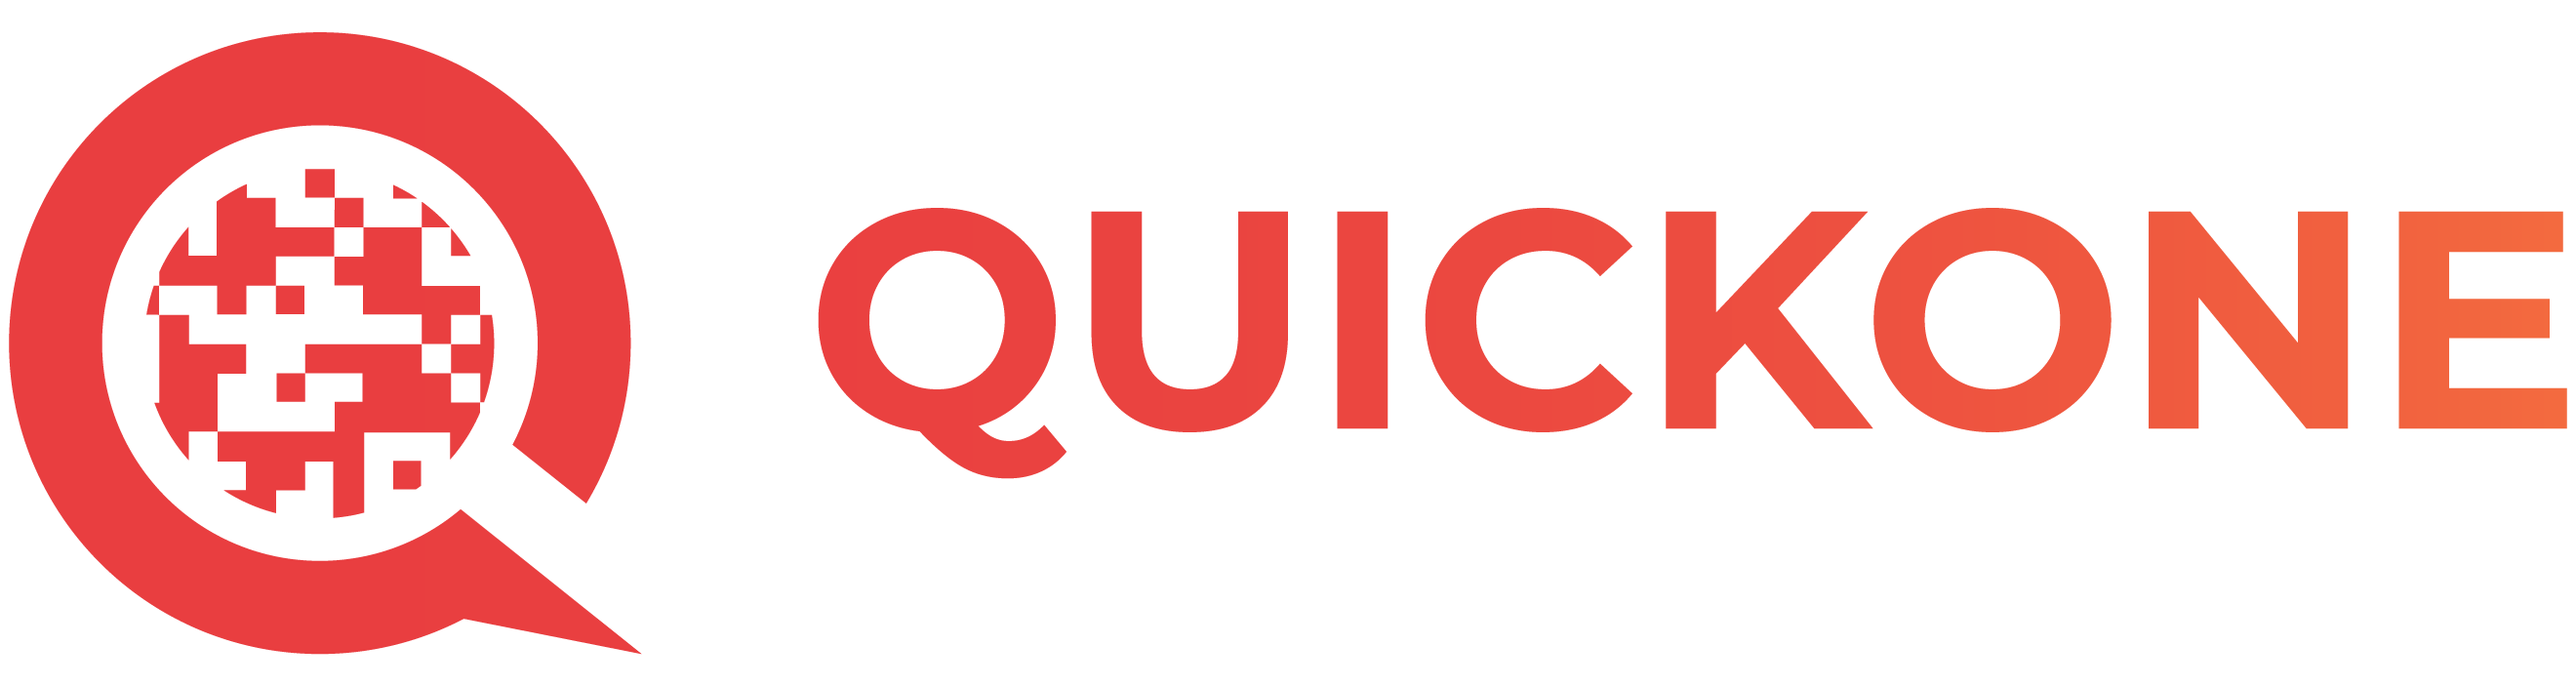 Quick One Launches ICO Based on Newly Developed QR Code